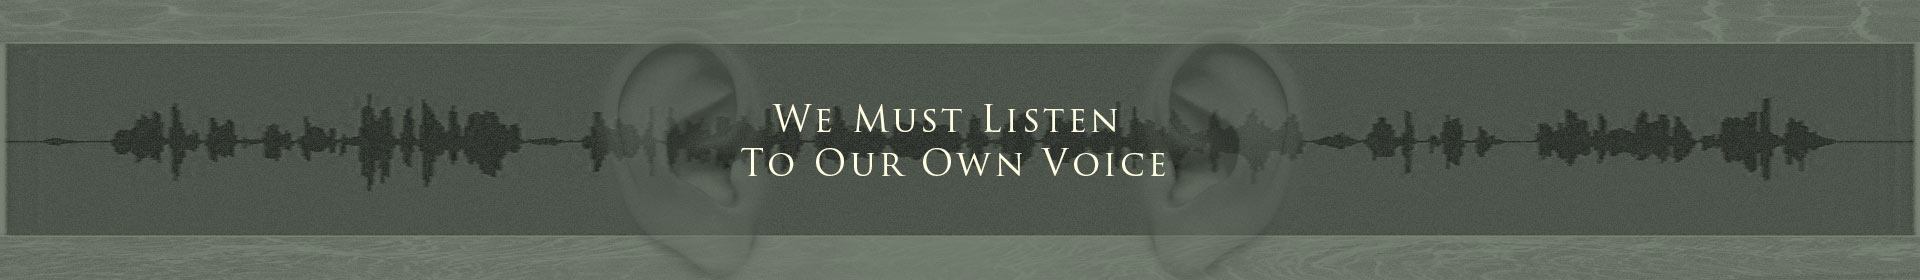 We Must Listen To Our Own Voice